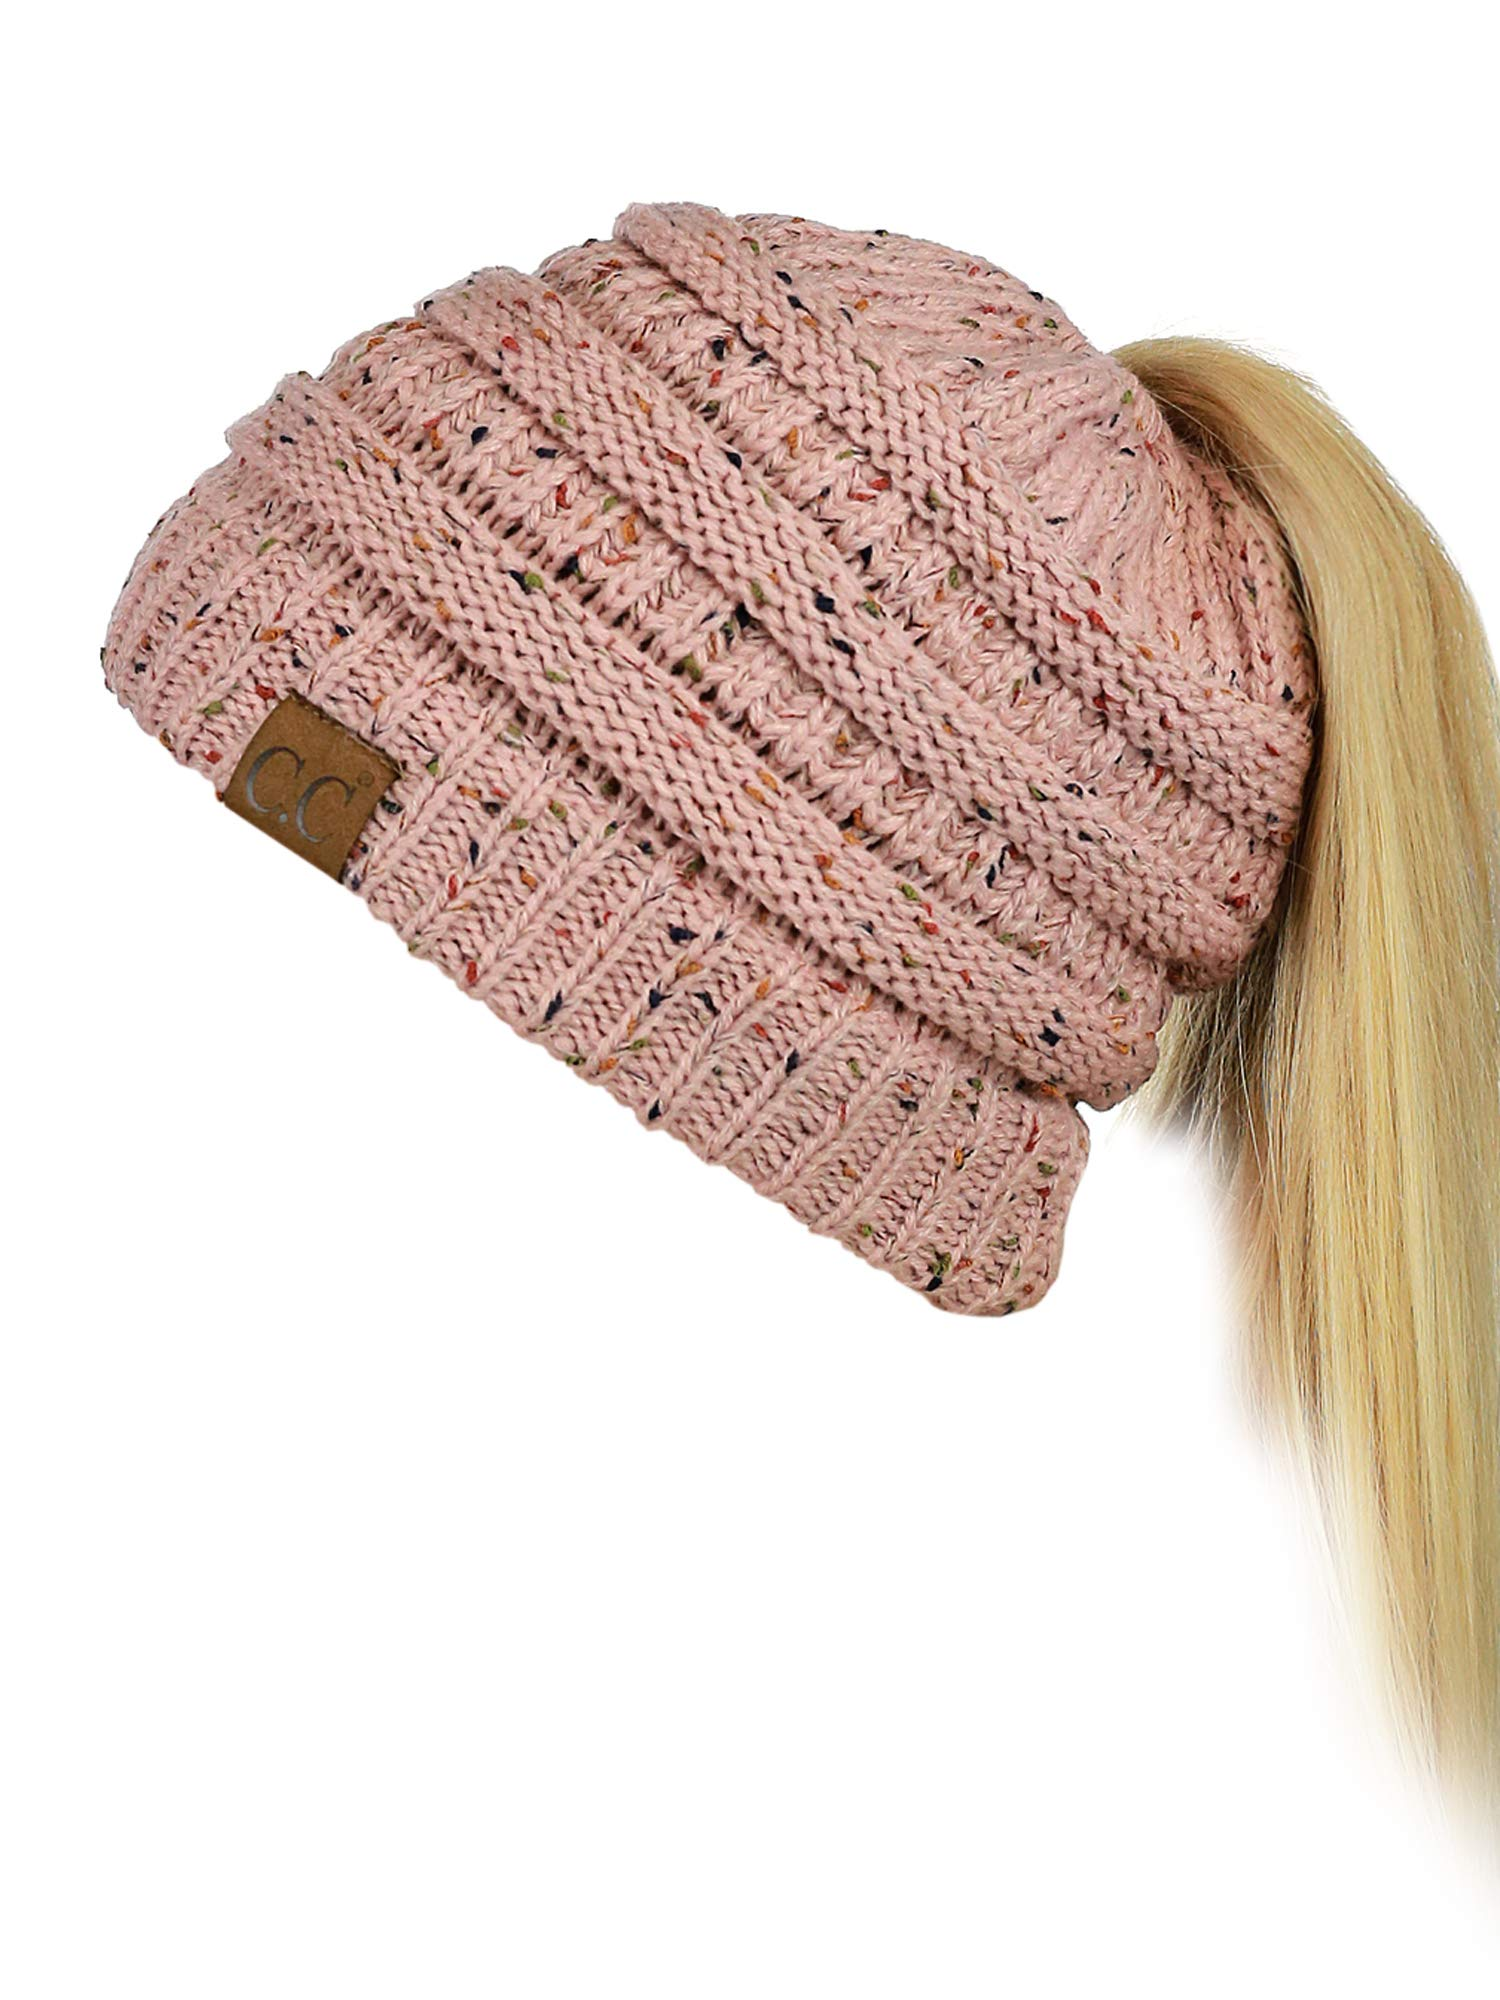 f292f9841f5585 Galleon - C.C BeanieTail Soft Stretch Cable Knit Messy High Bun Ponytail  Beanie Hat, Confetti Indi Pink